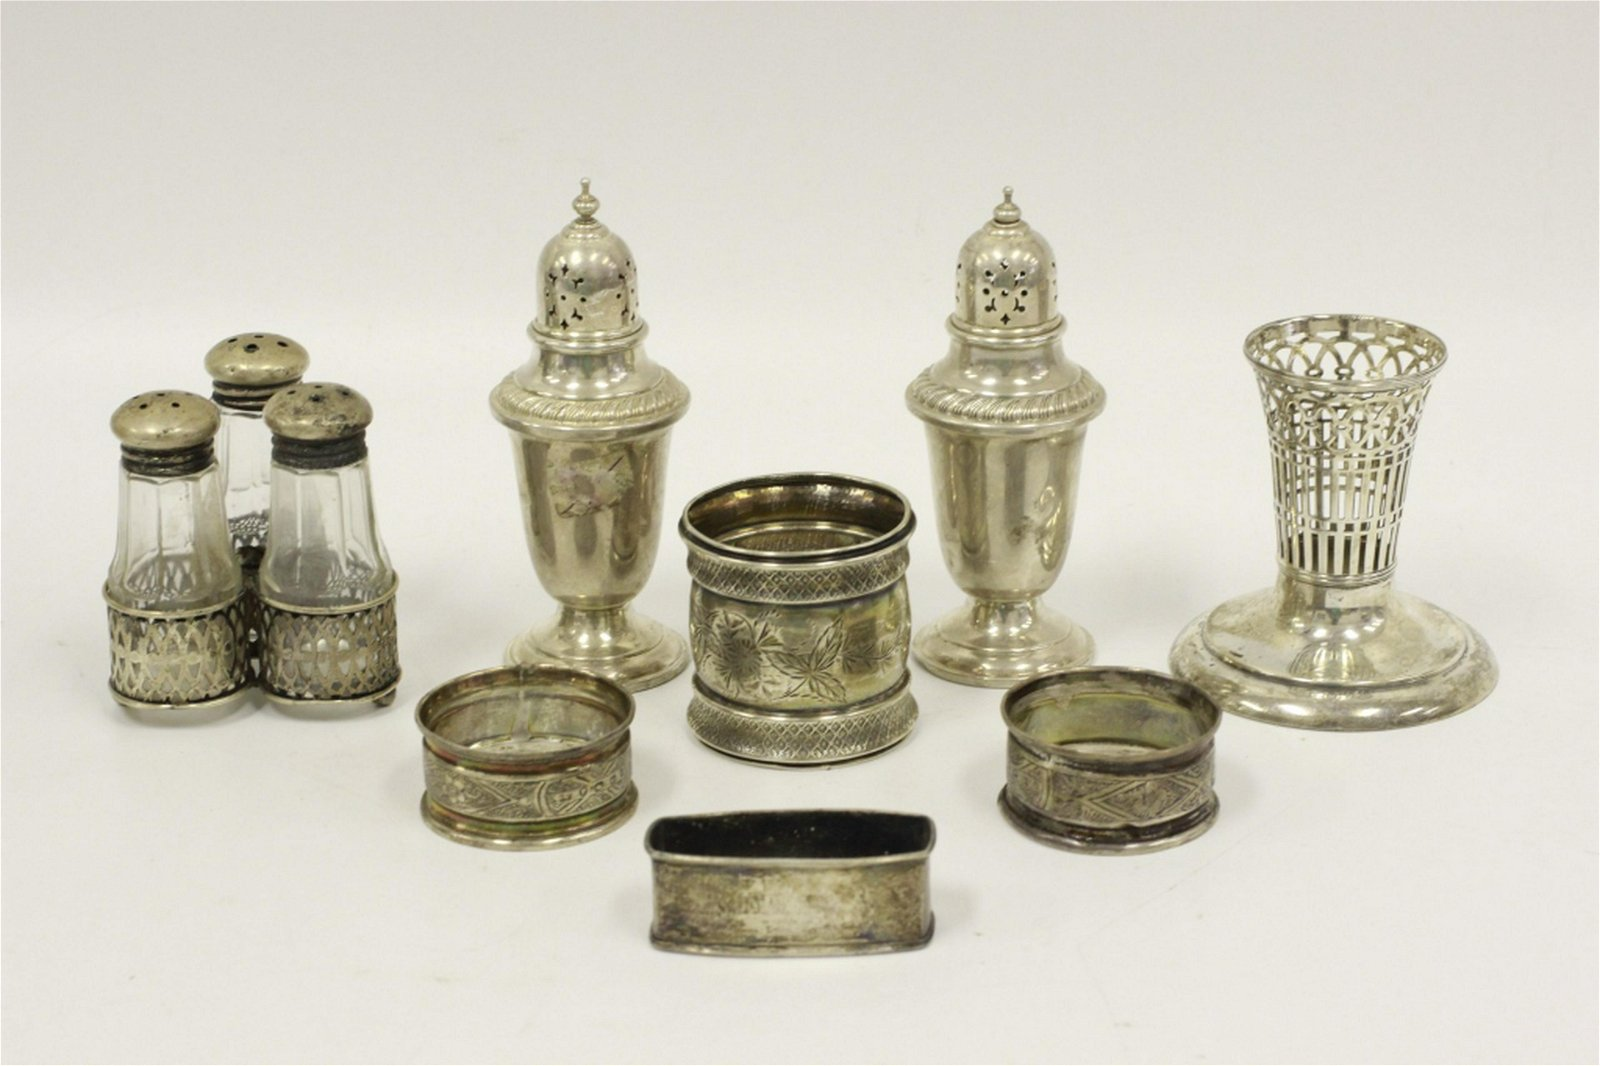 8pc Sterling Silver Lot Including Gorham